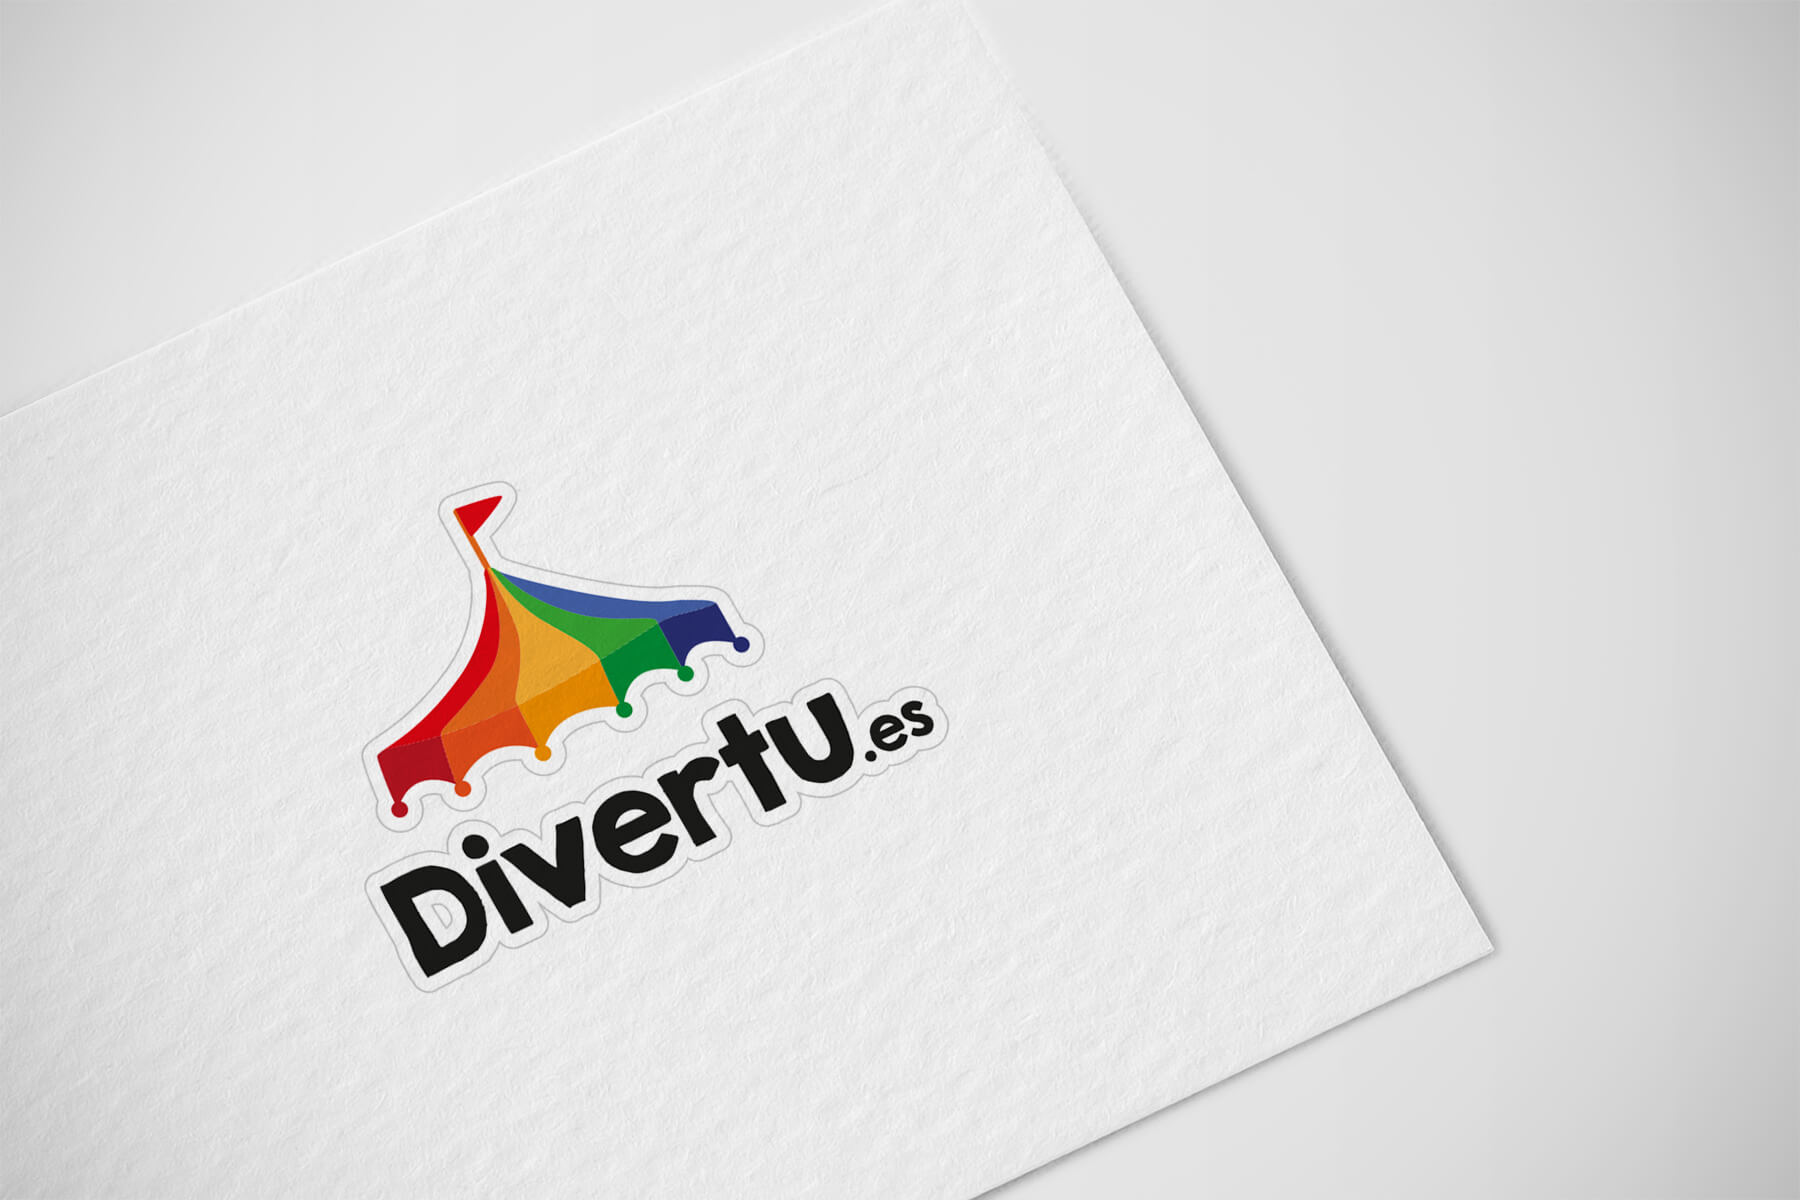 Logo Divertu